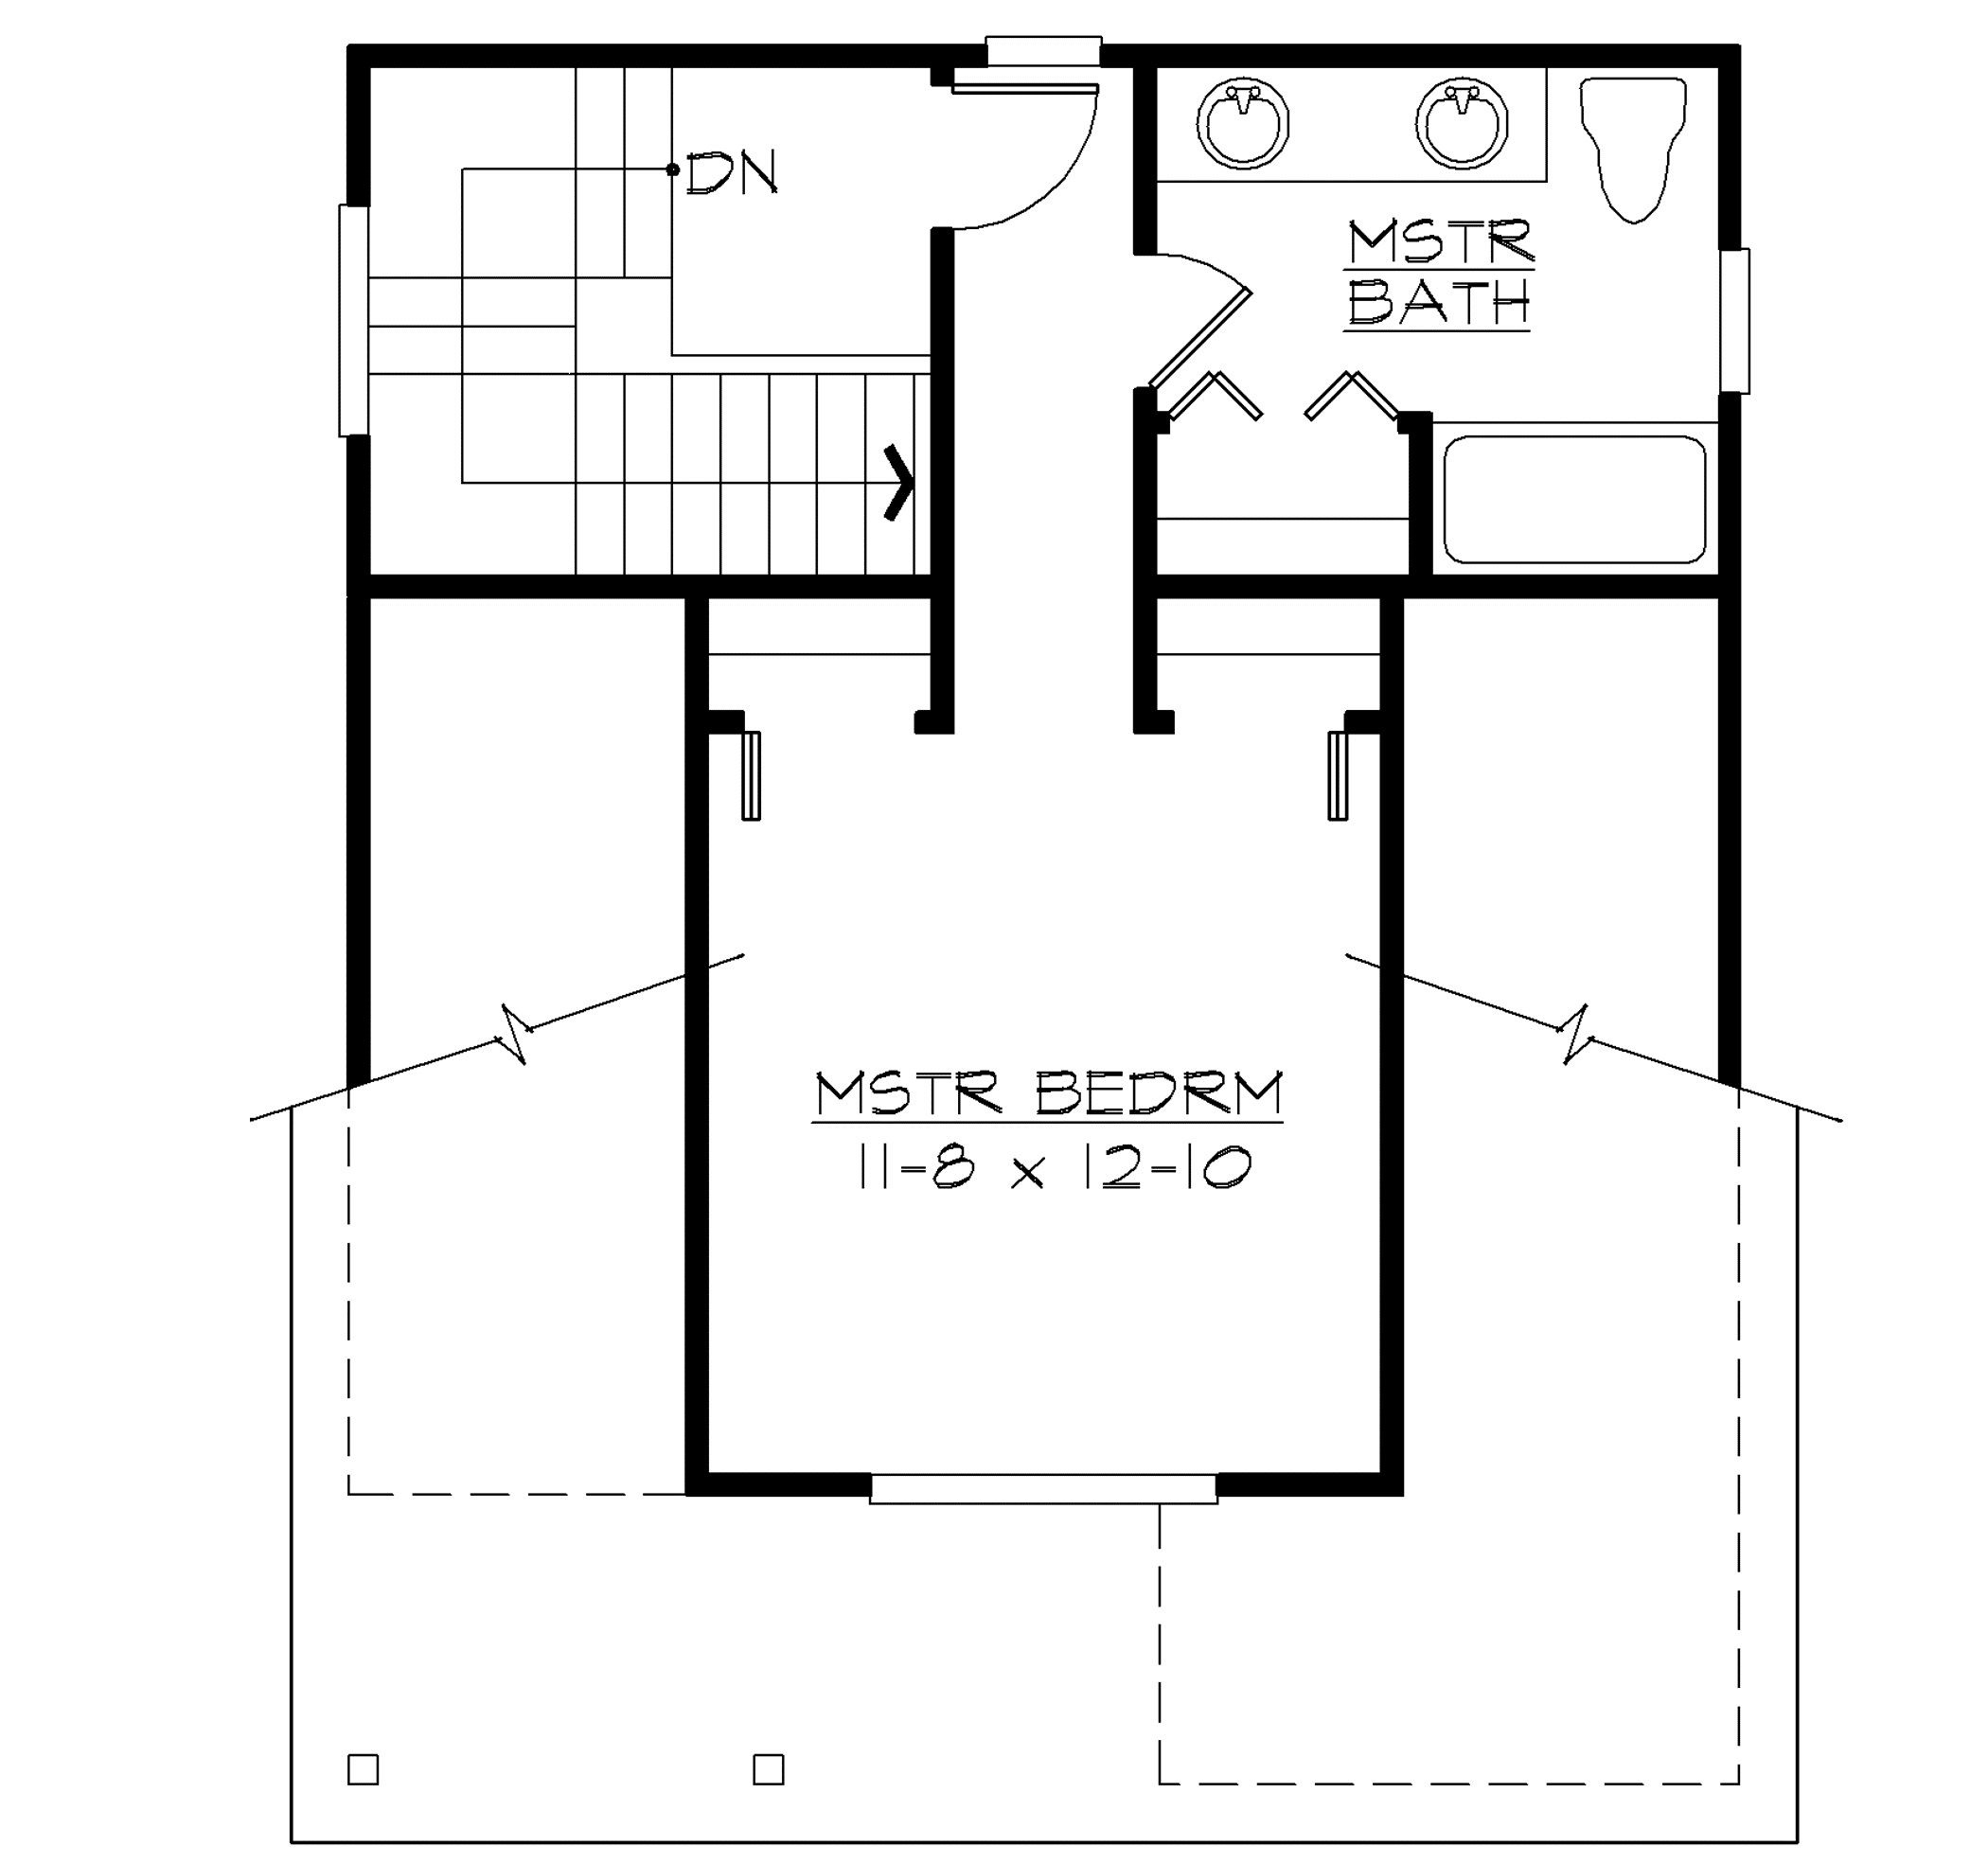 Small house plan second floor layout sdl custom homes for Small house design 2nd floor